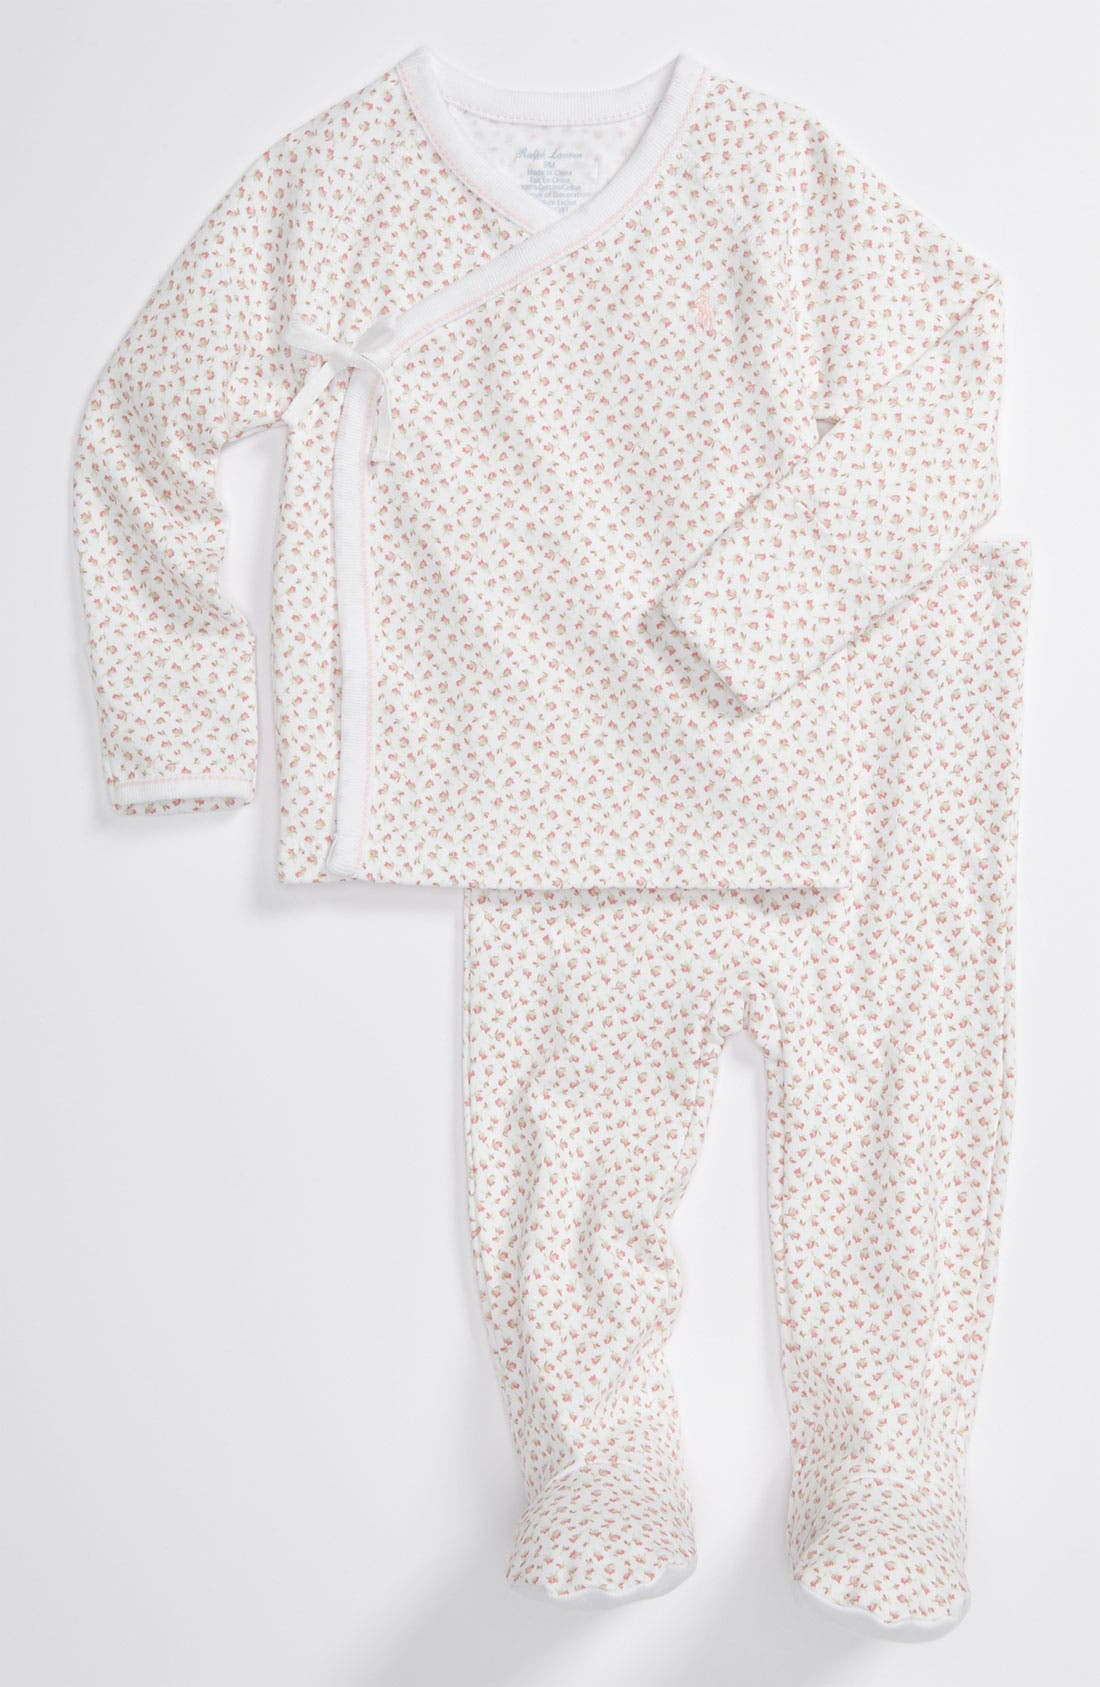 Alternate Image 1 Selected - Ralph Lauren Print Top & Footed Pants Set (Baby)